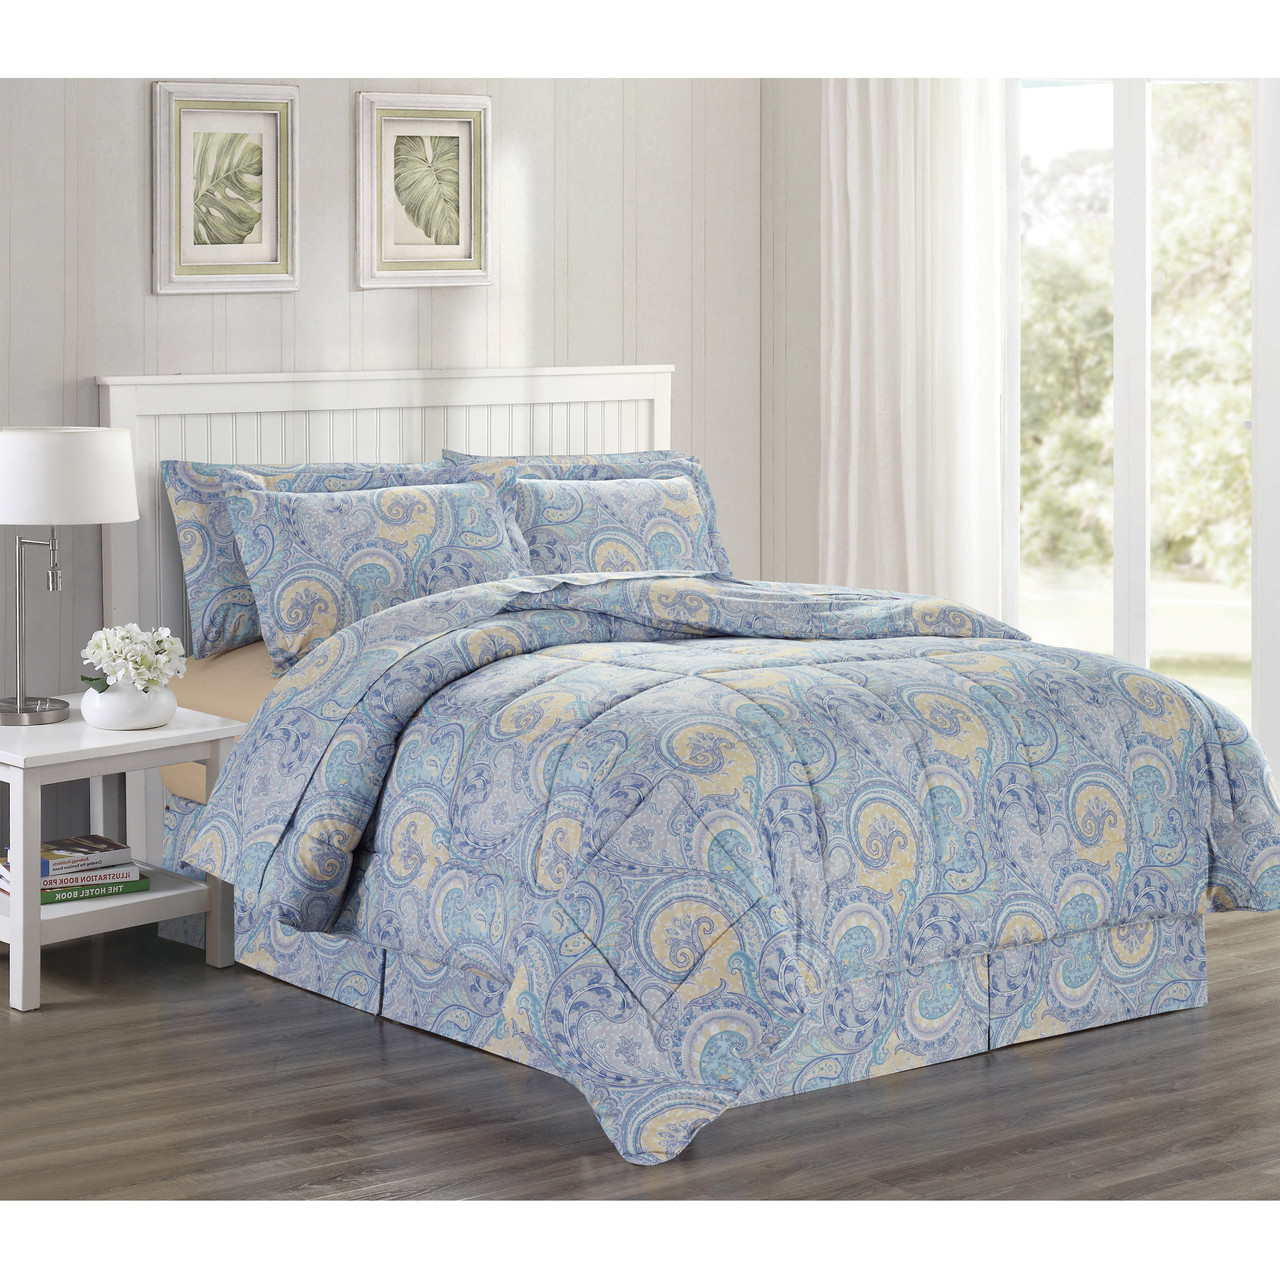 com a walmart white ip set soft ruffle size comforter queen oversized bedding tufted odessa in piece bed bag